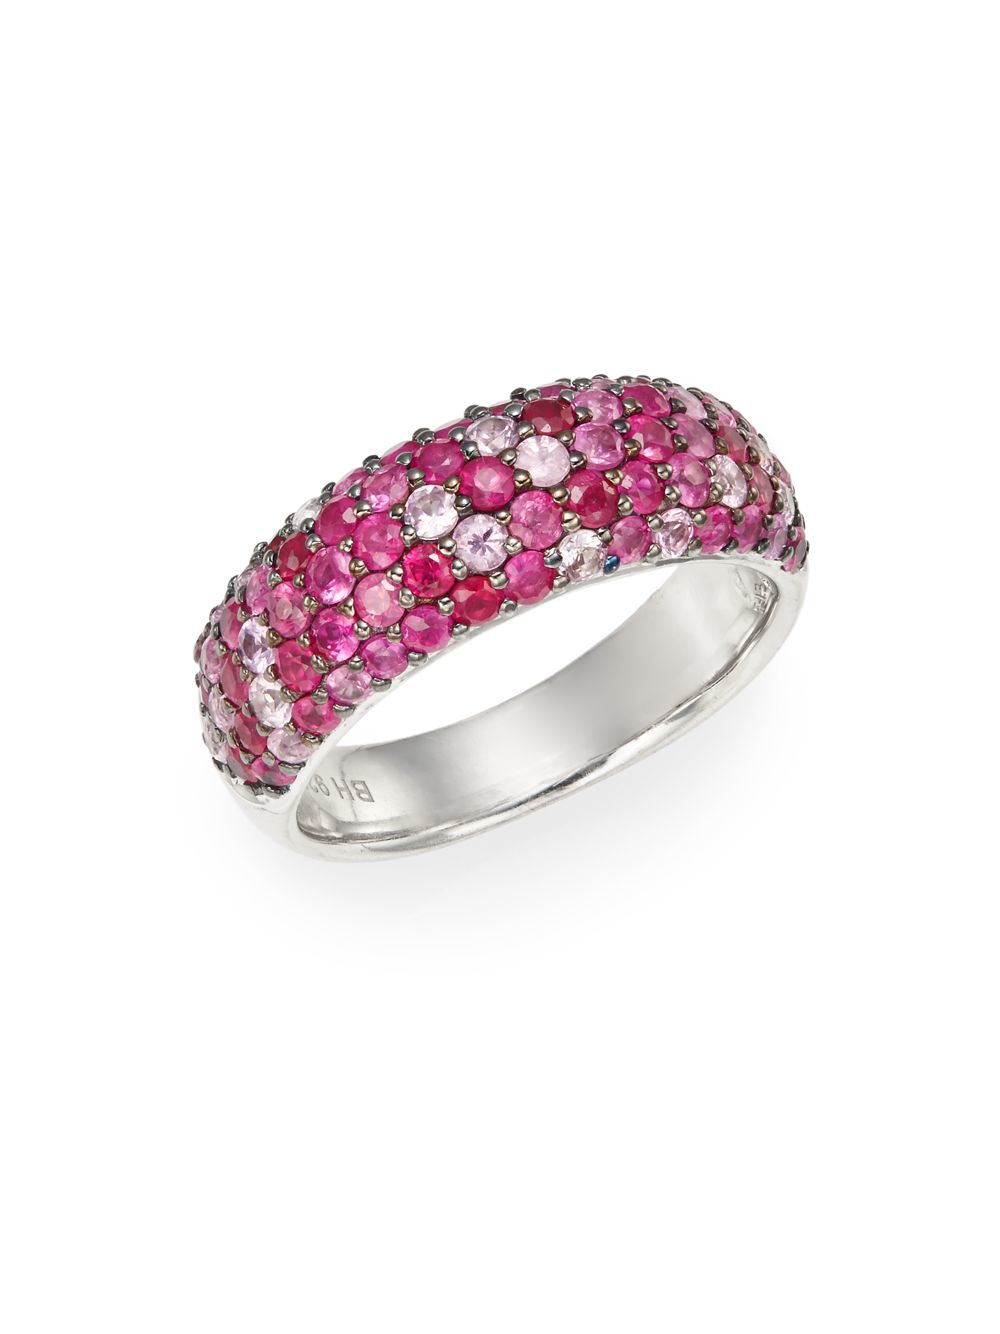 Effy Pink Sapphire And Diamond Ring